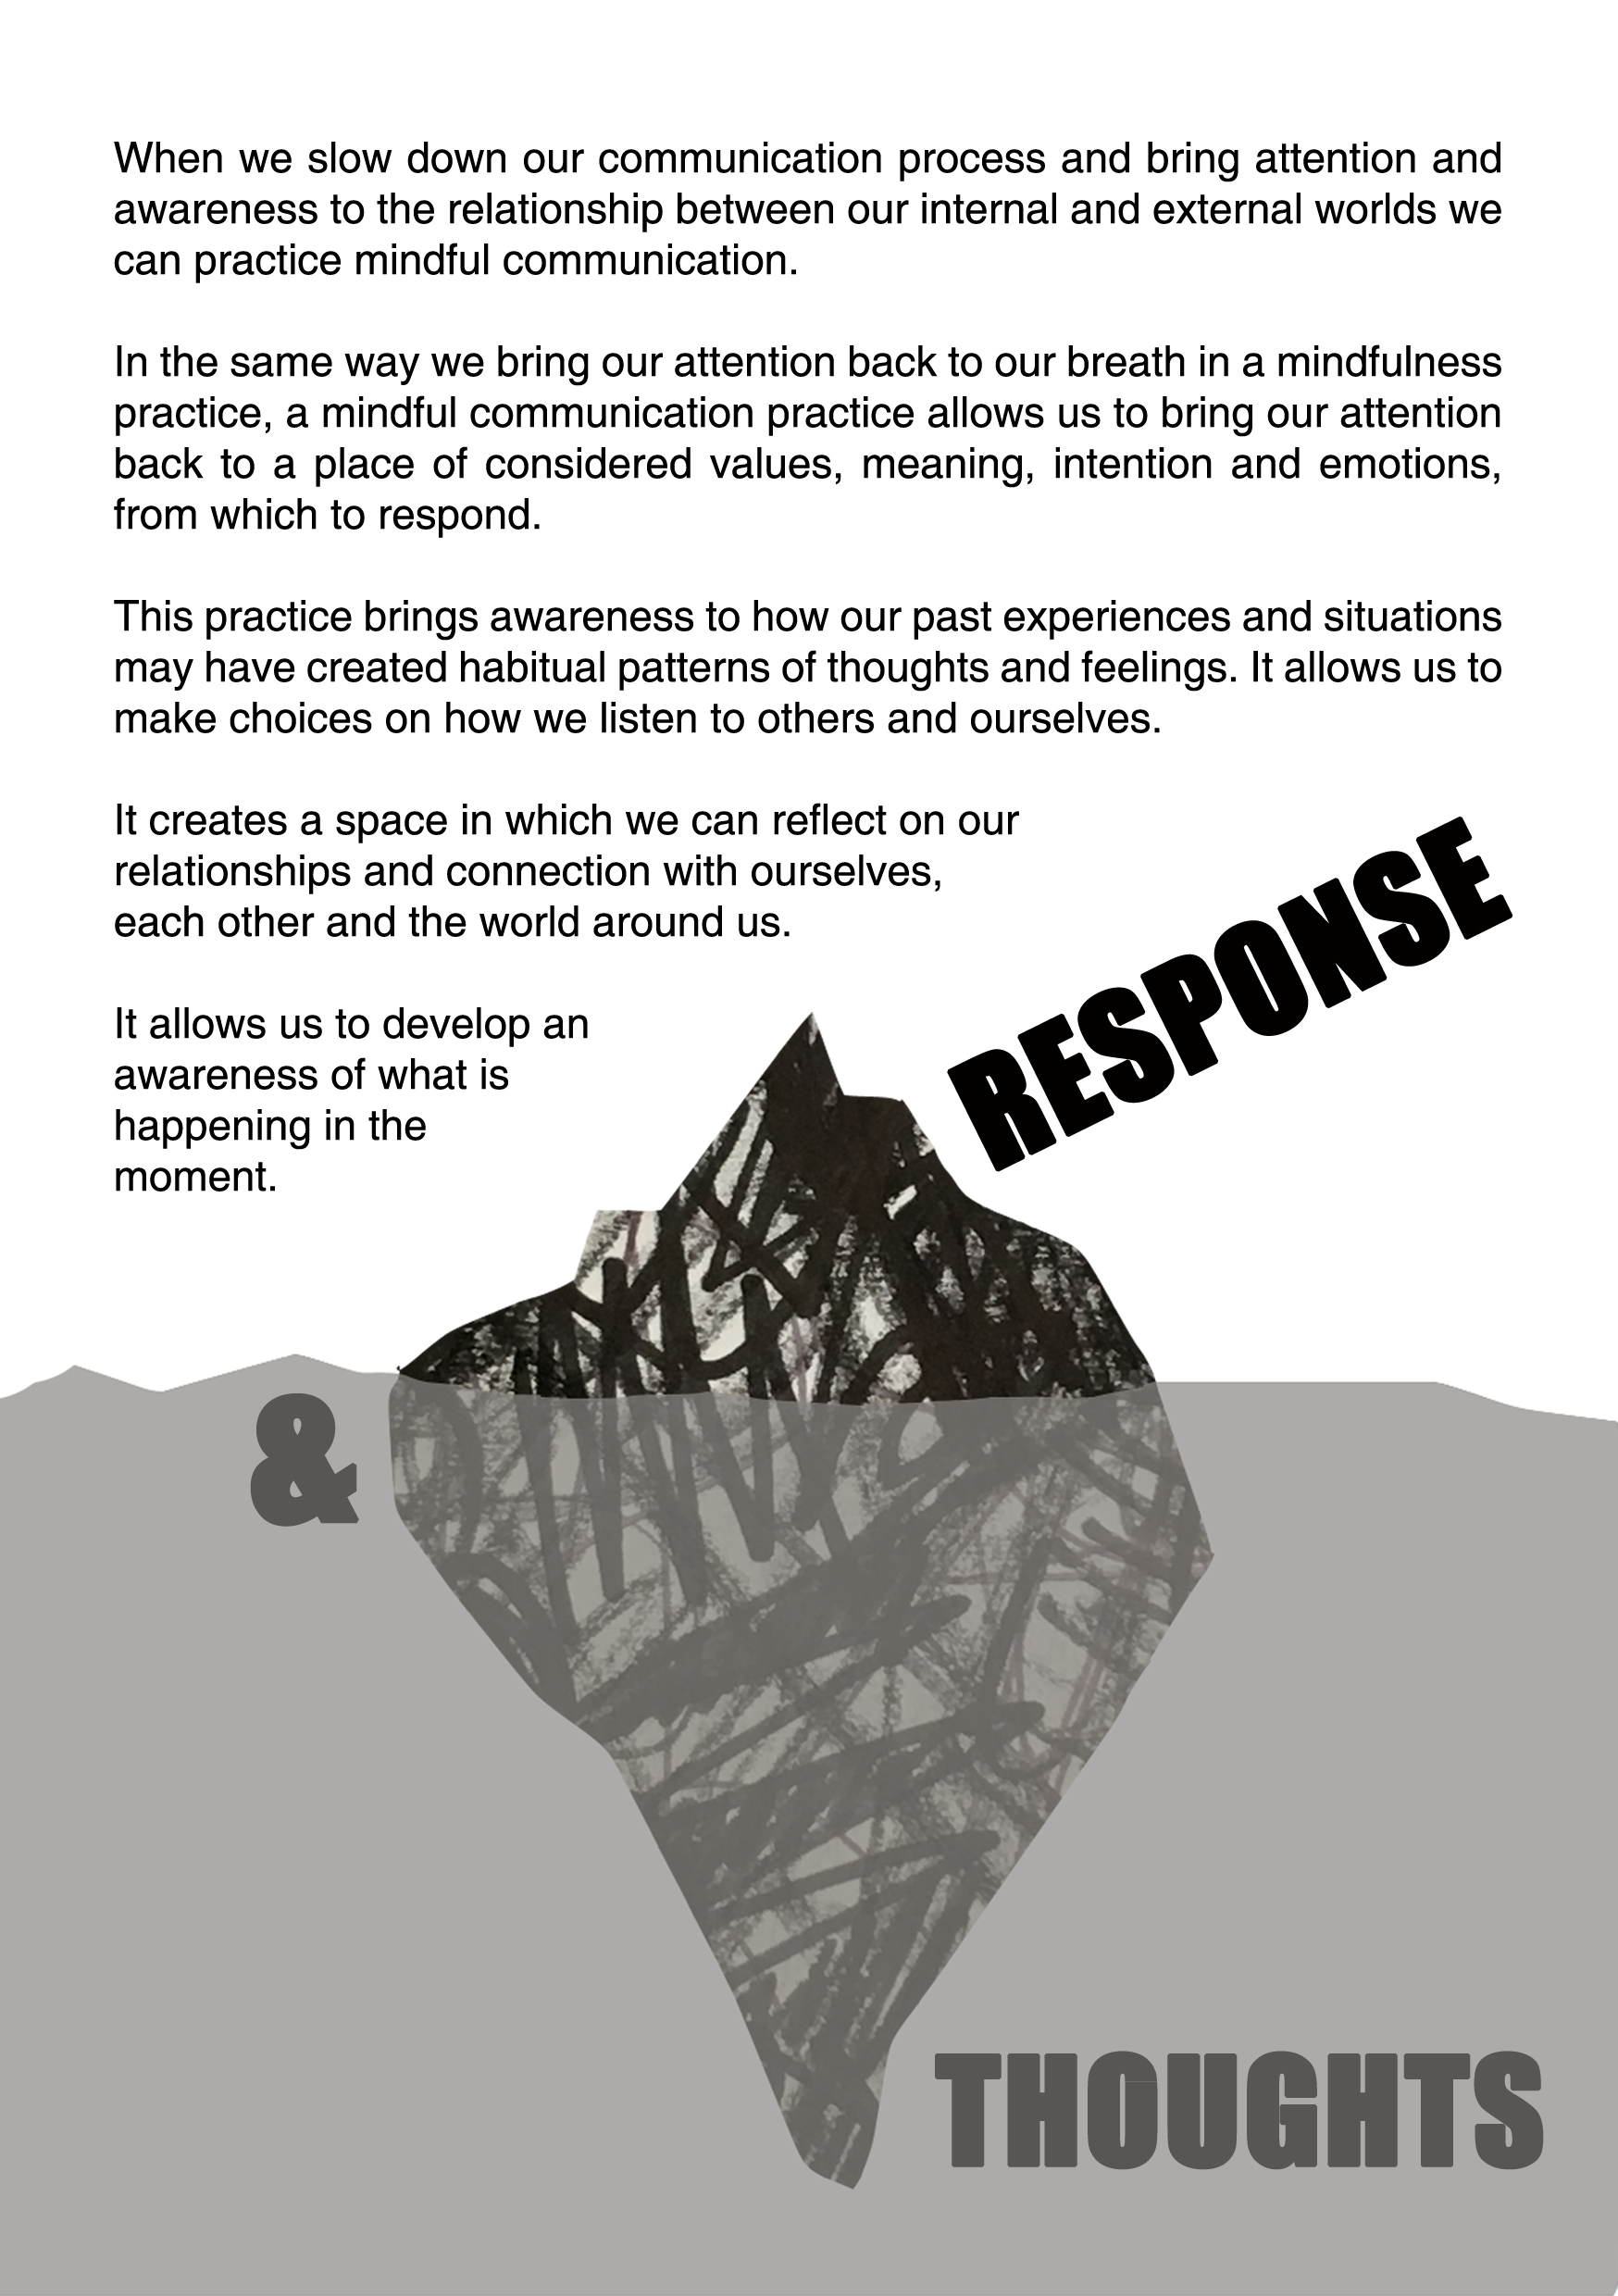 p6 thoughts and response.jpg